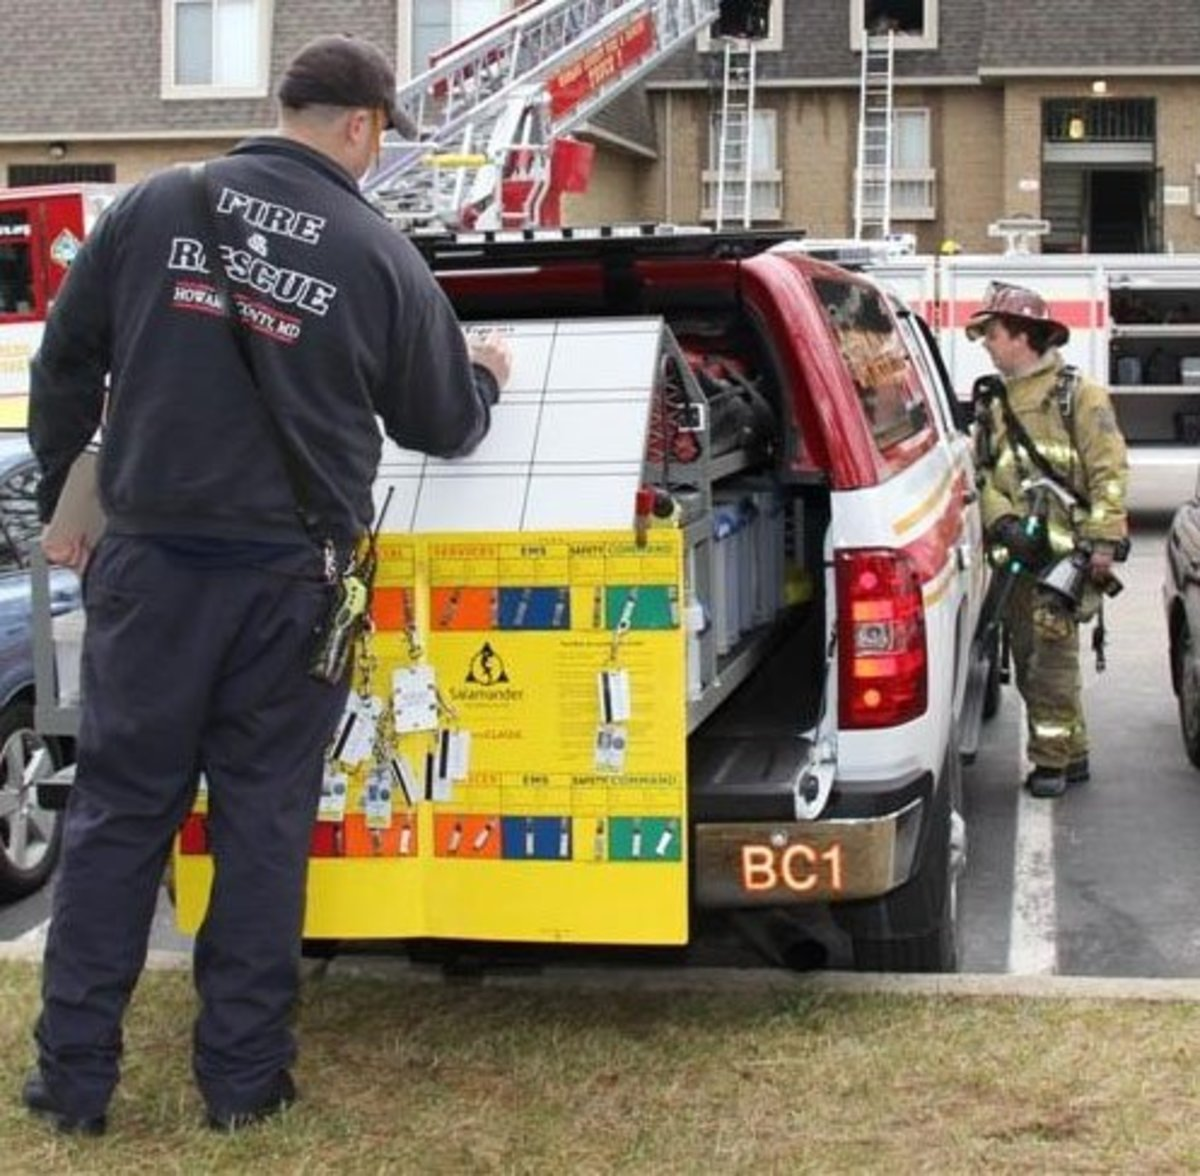 Firefighter using the accountability system to track fireground operations.